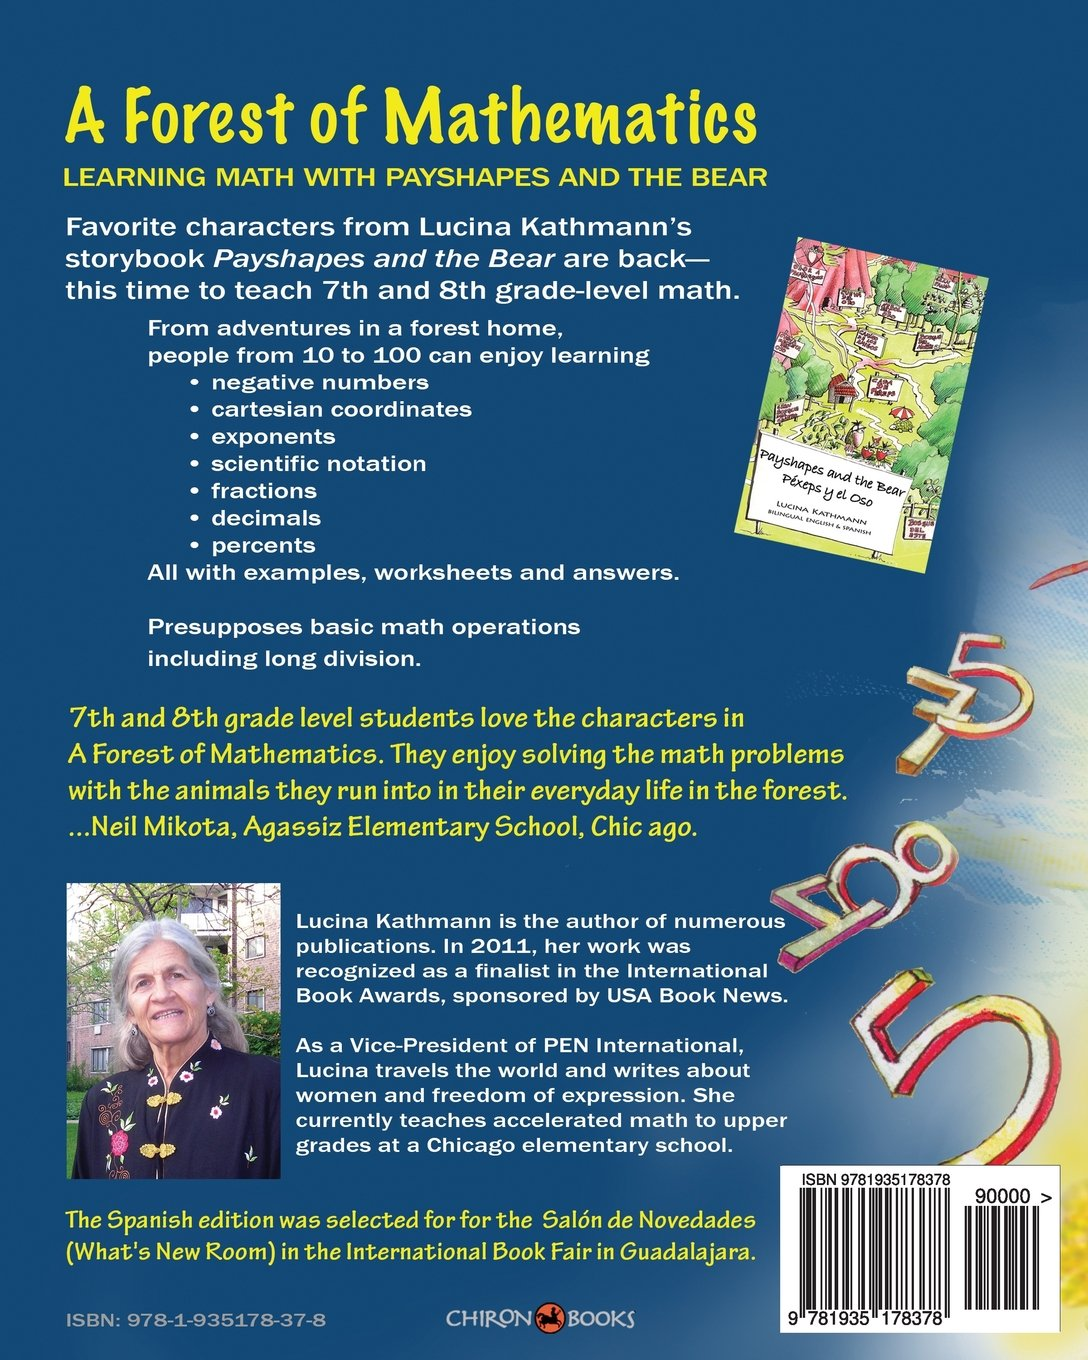 A Forest of Mathematics: Learning Math with Payshapes and